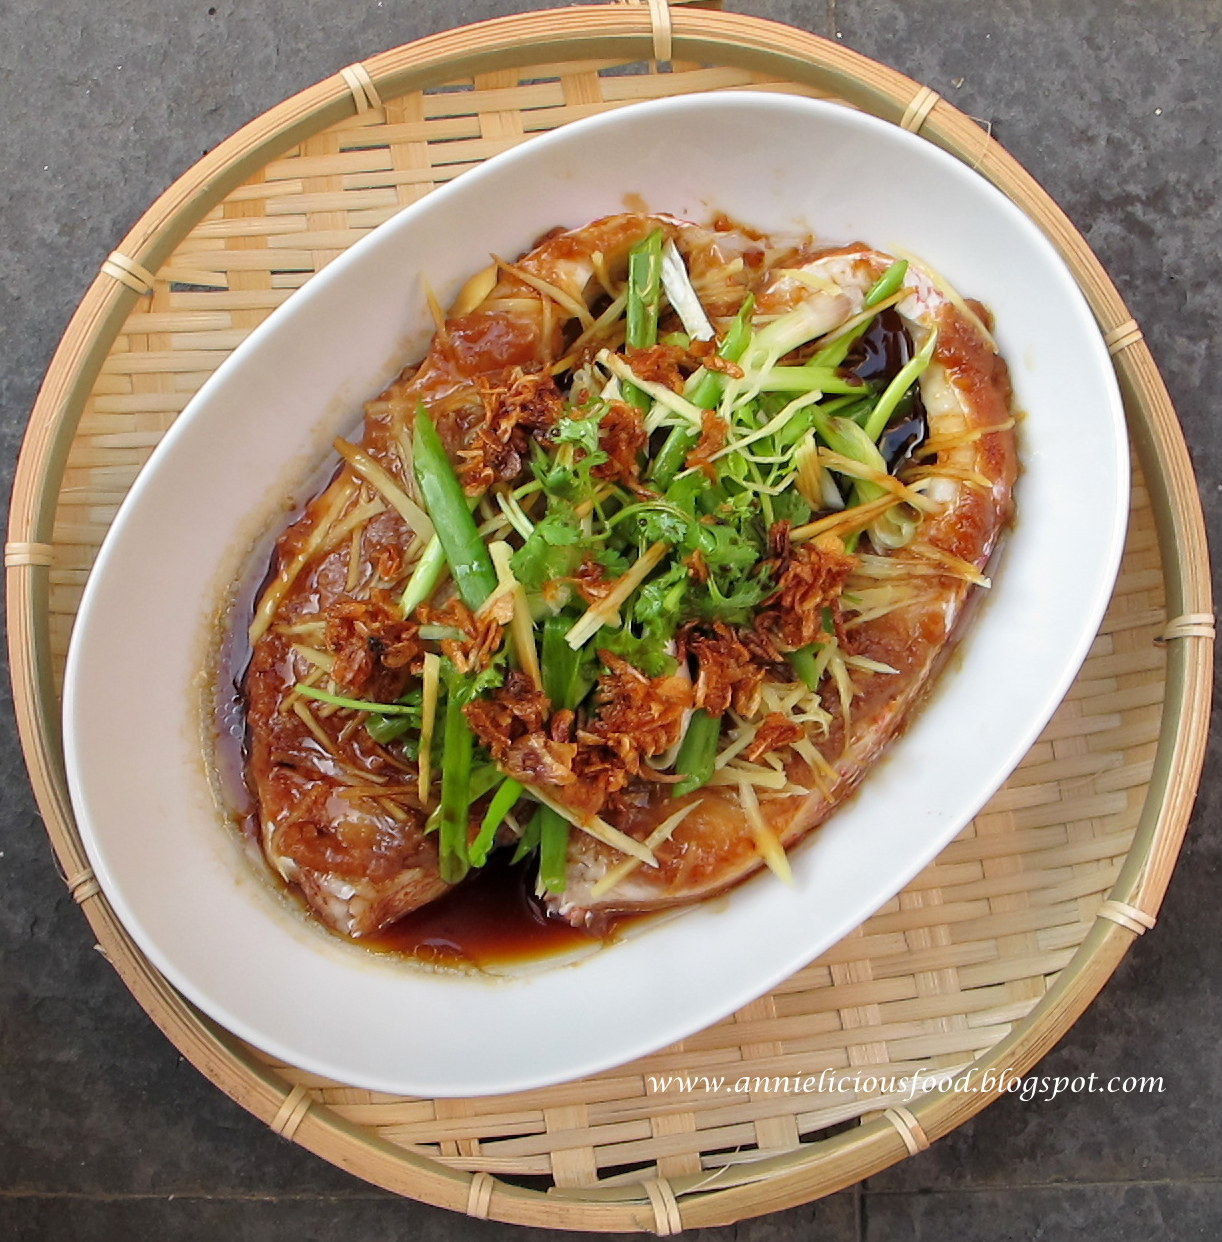 Annielicious food steamed fish with fermented bean paste it could bring out the sweetness of the fish fresh tasting fish like red snapper or threadfin works well with taucheo as they taste milder forumfinder Choice Image